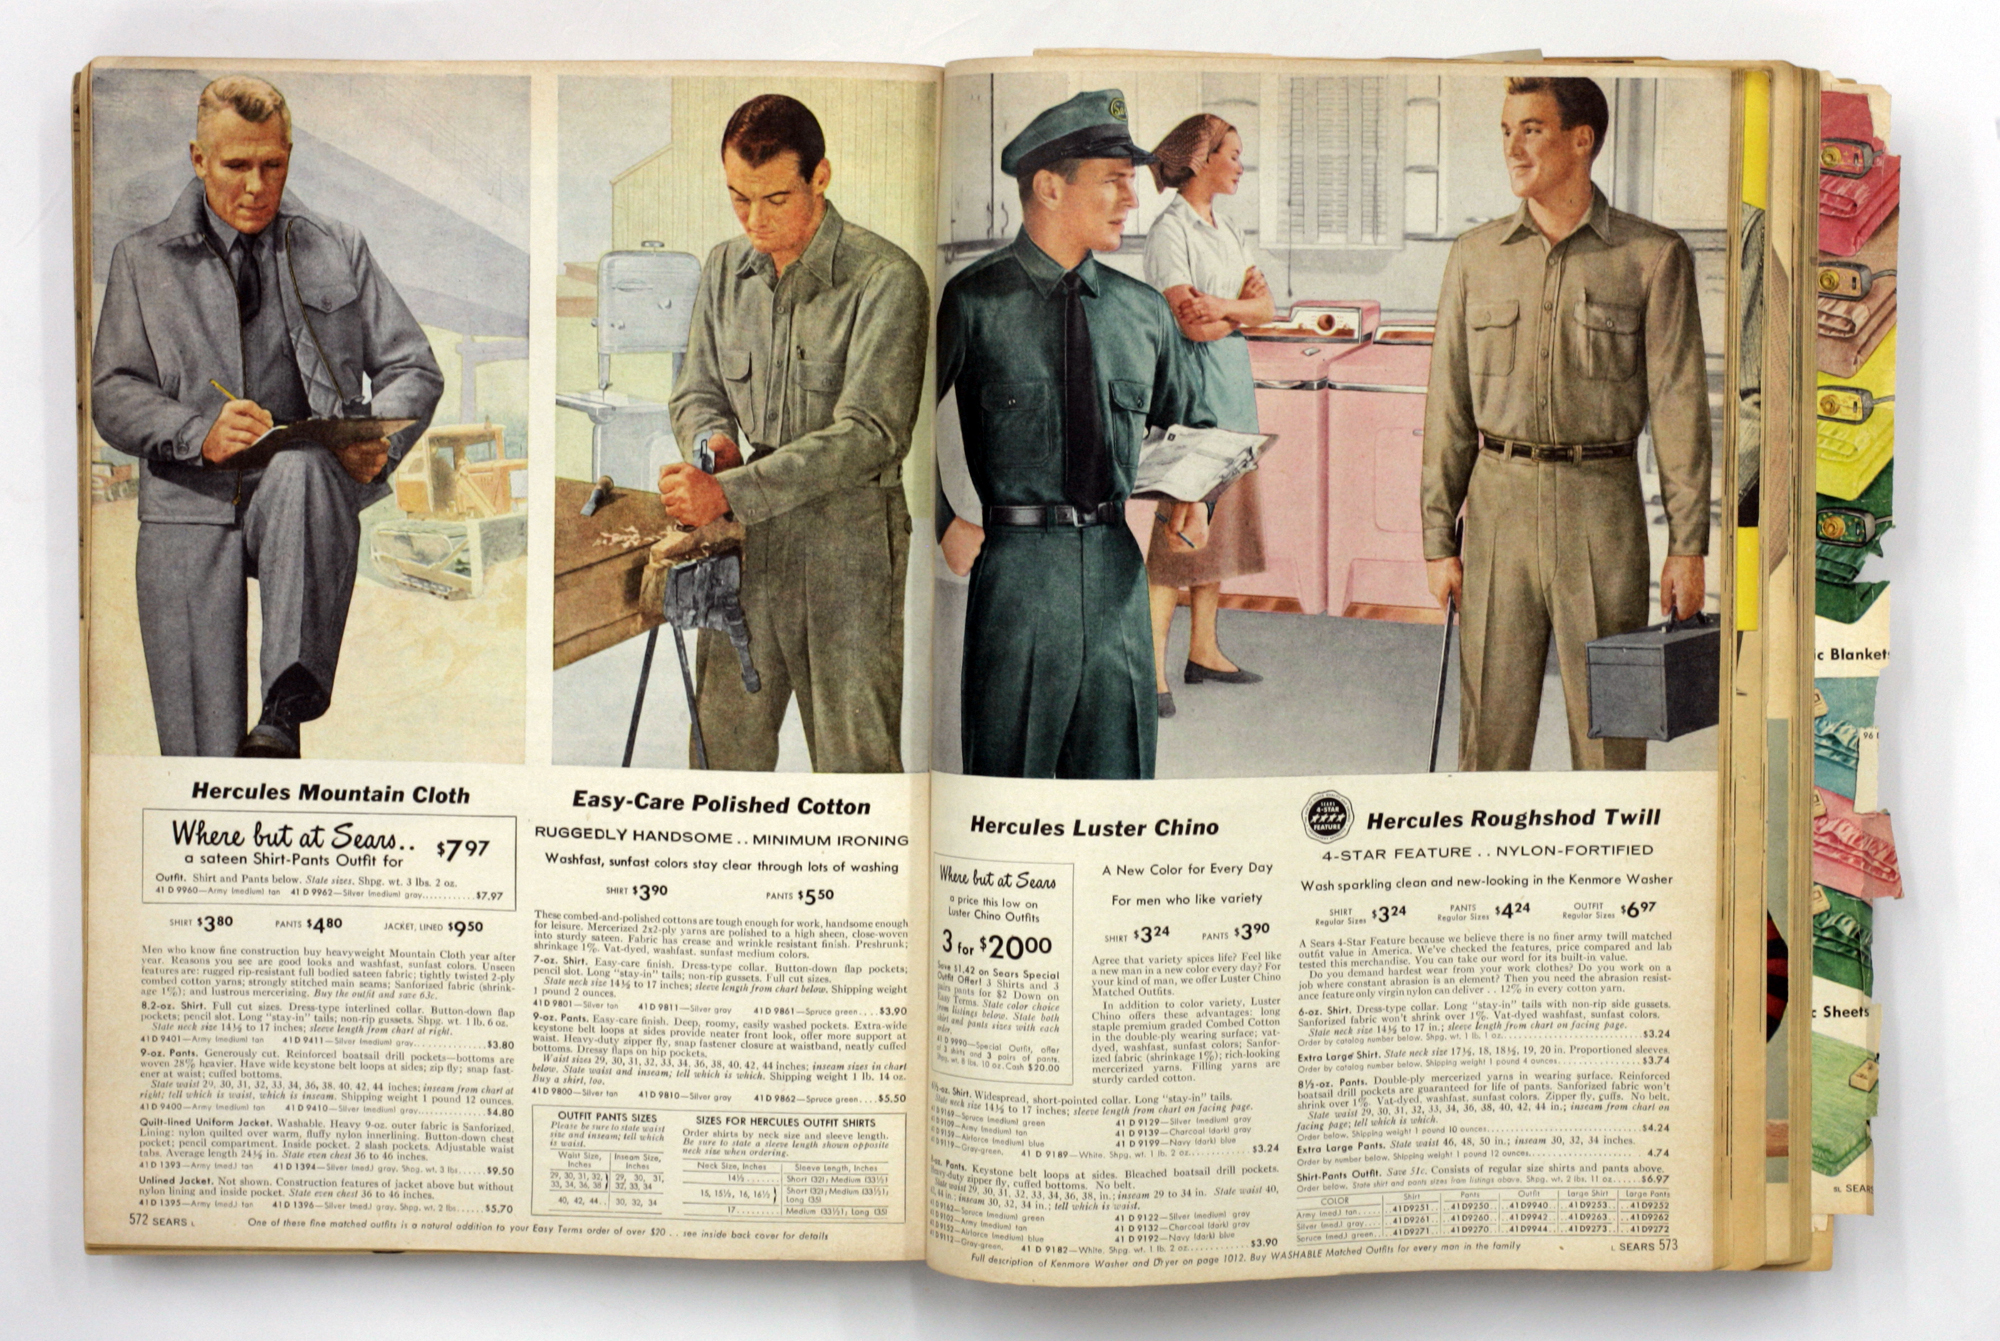 How the Sears catalog transformed shopping under Jim Crow, explained by a historian